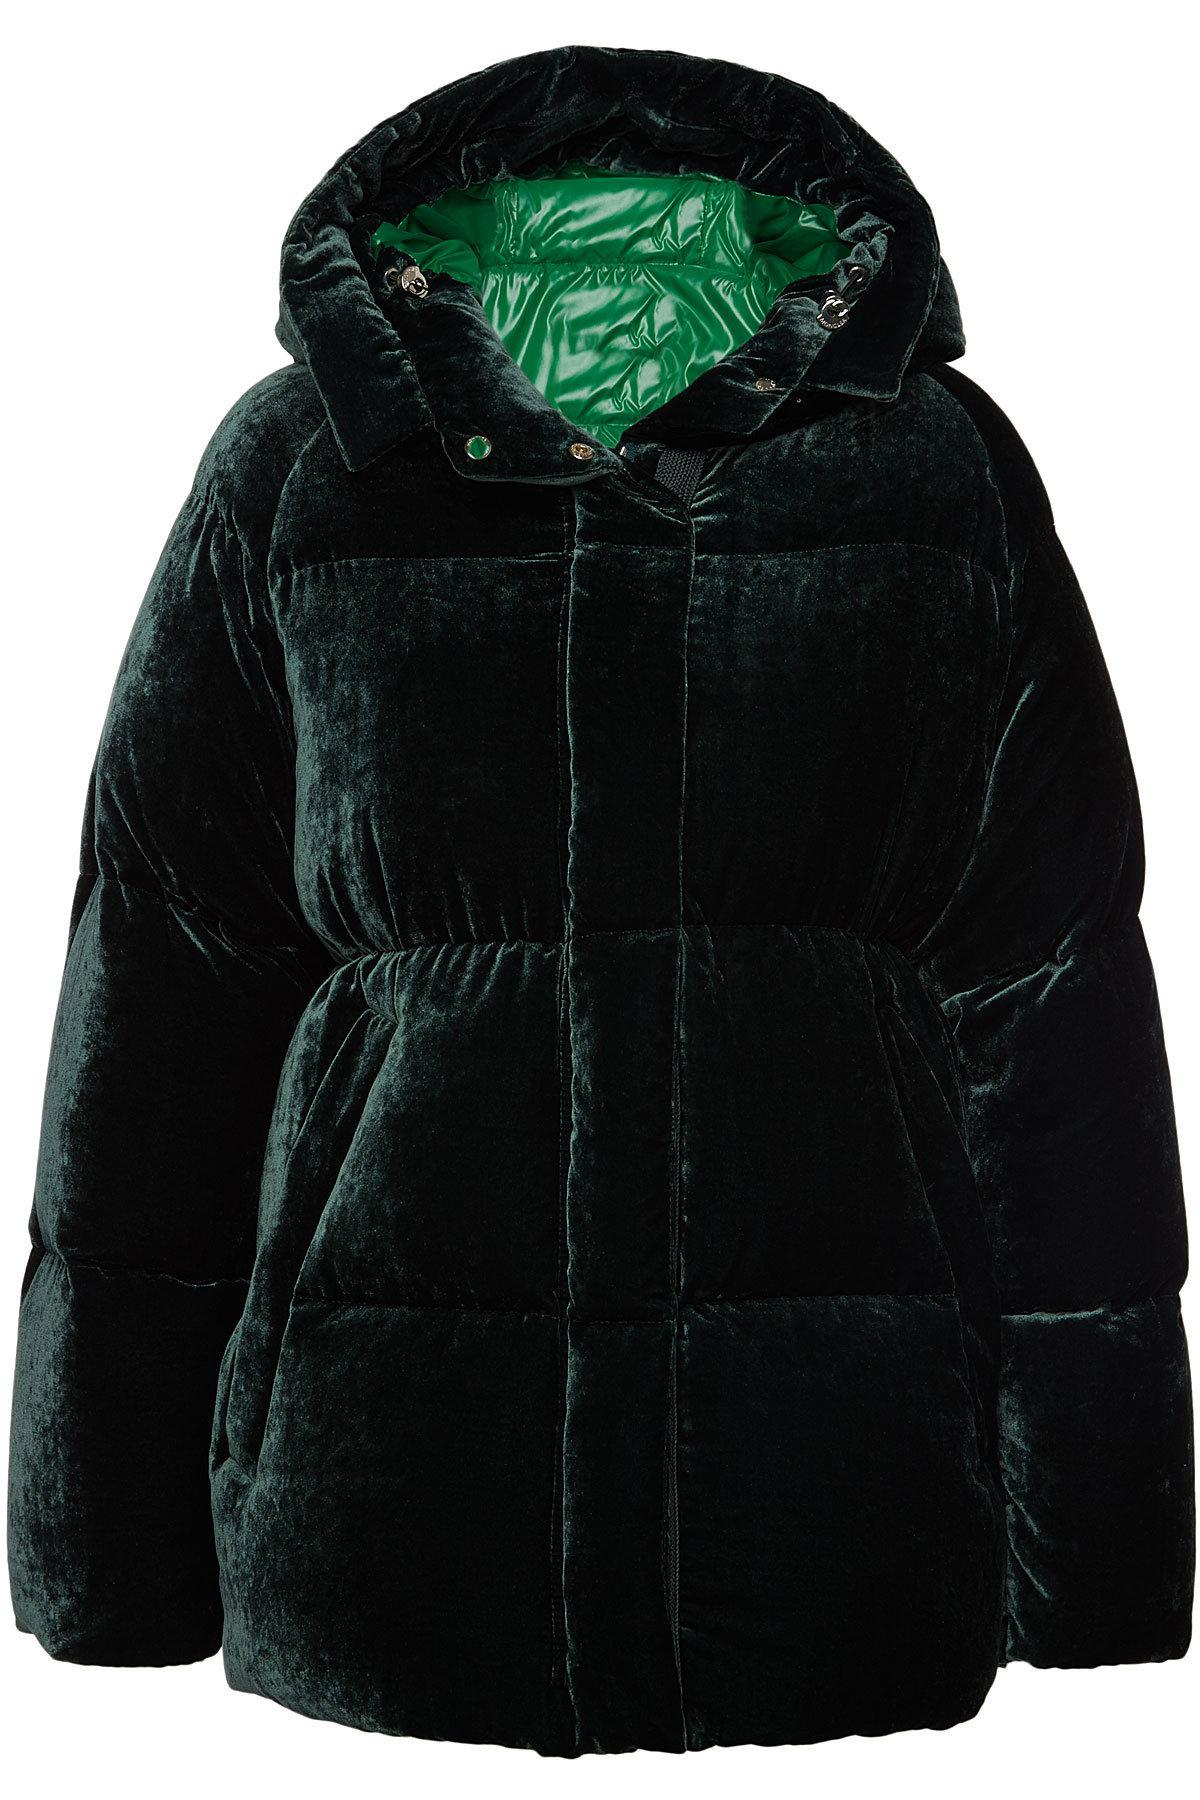 7a003e8dd56c Moncler Butor Velvet Down Jacket With Silk in Black - Lyst